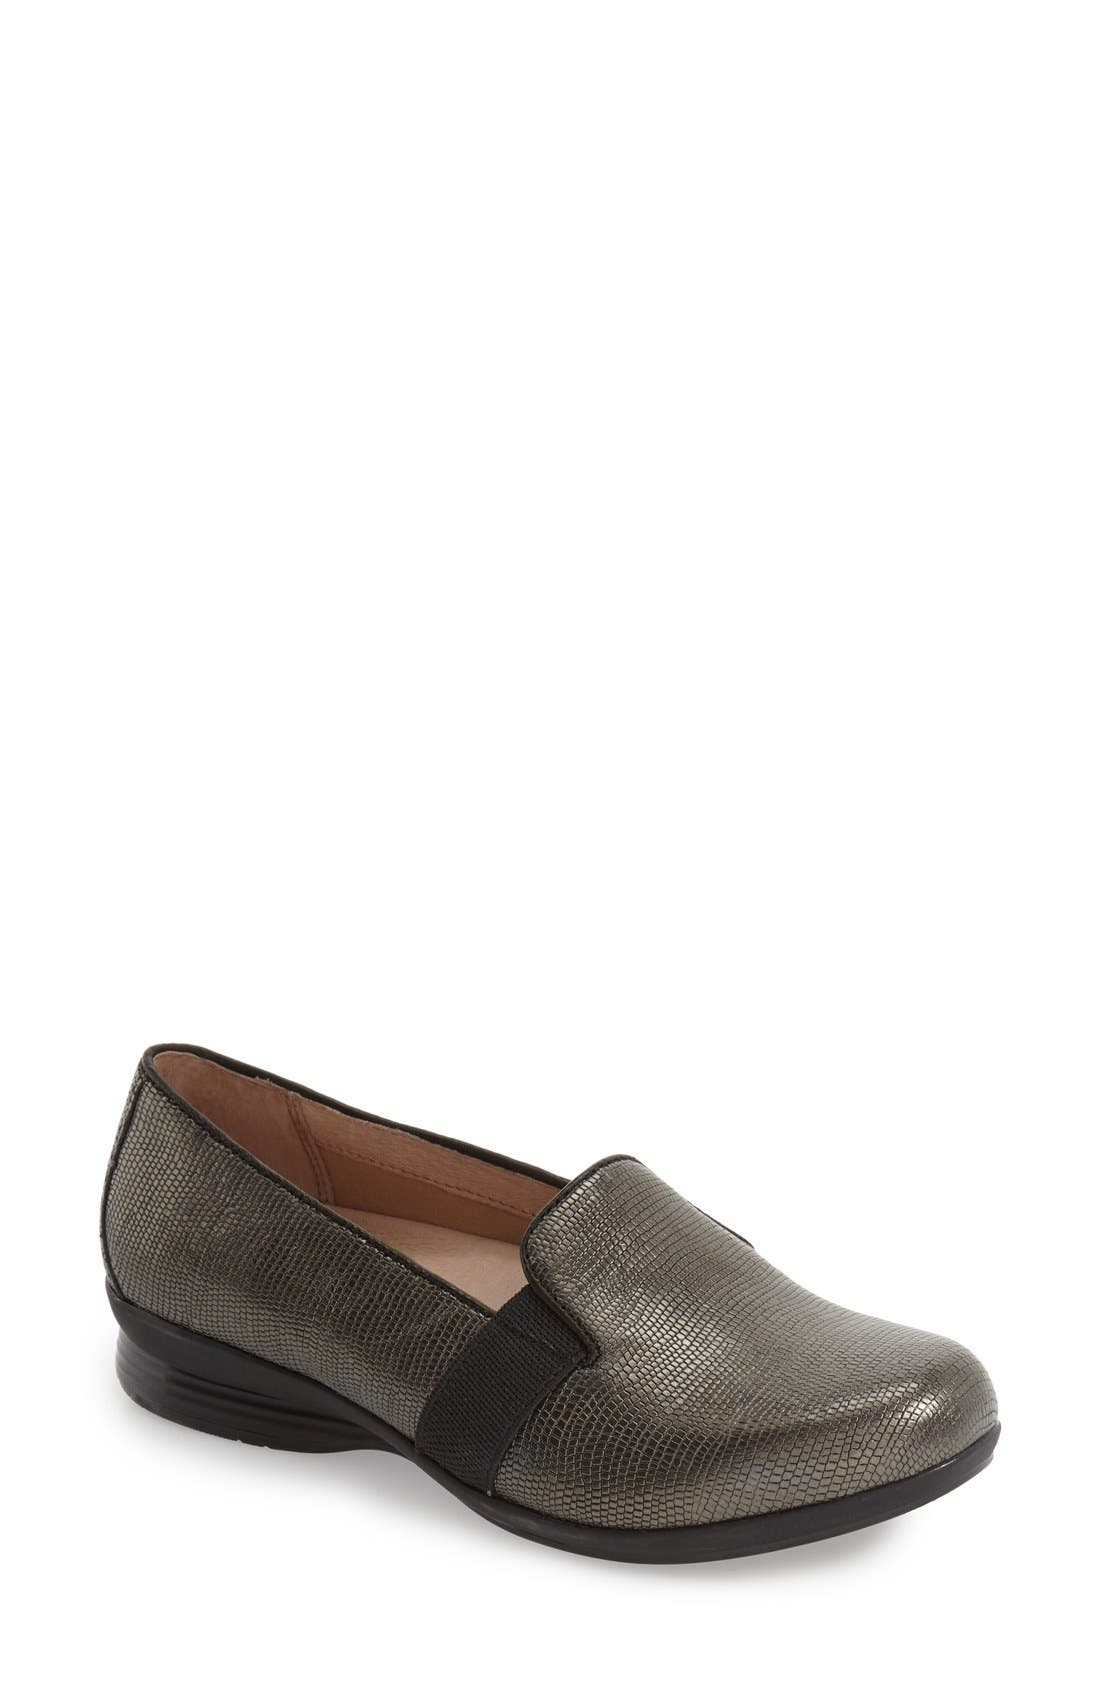 DANSKO Addy Loafer